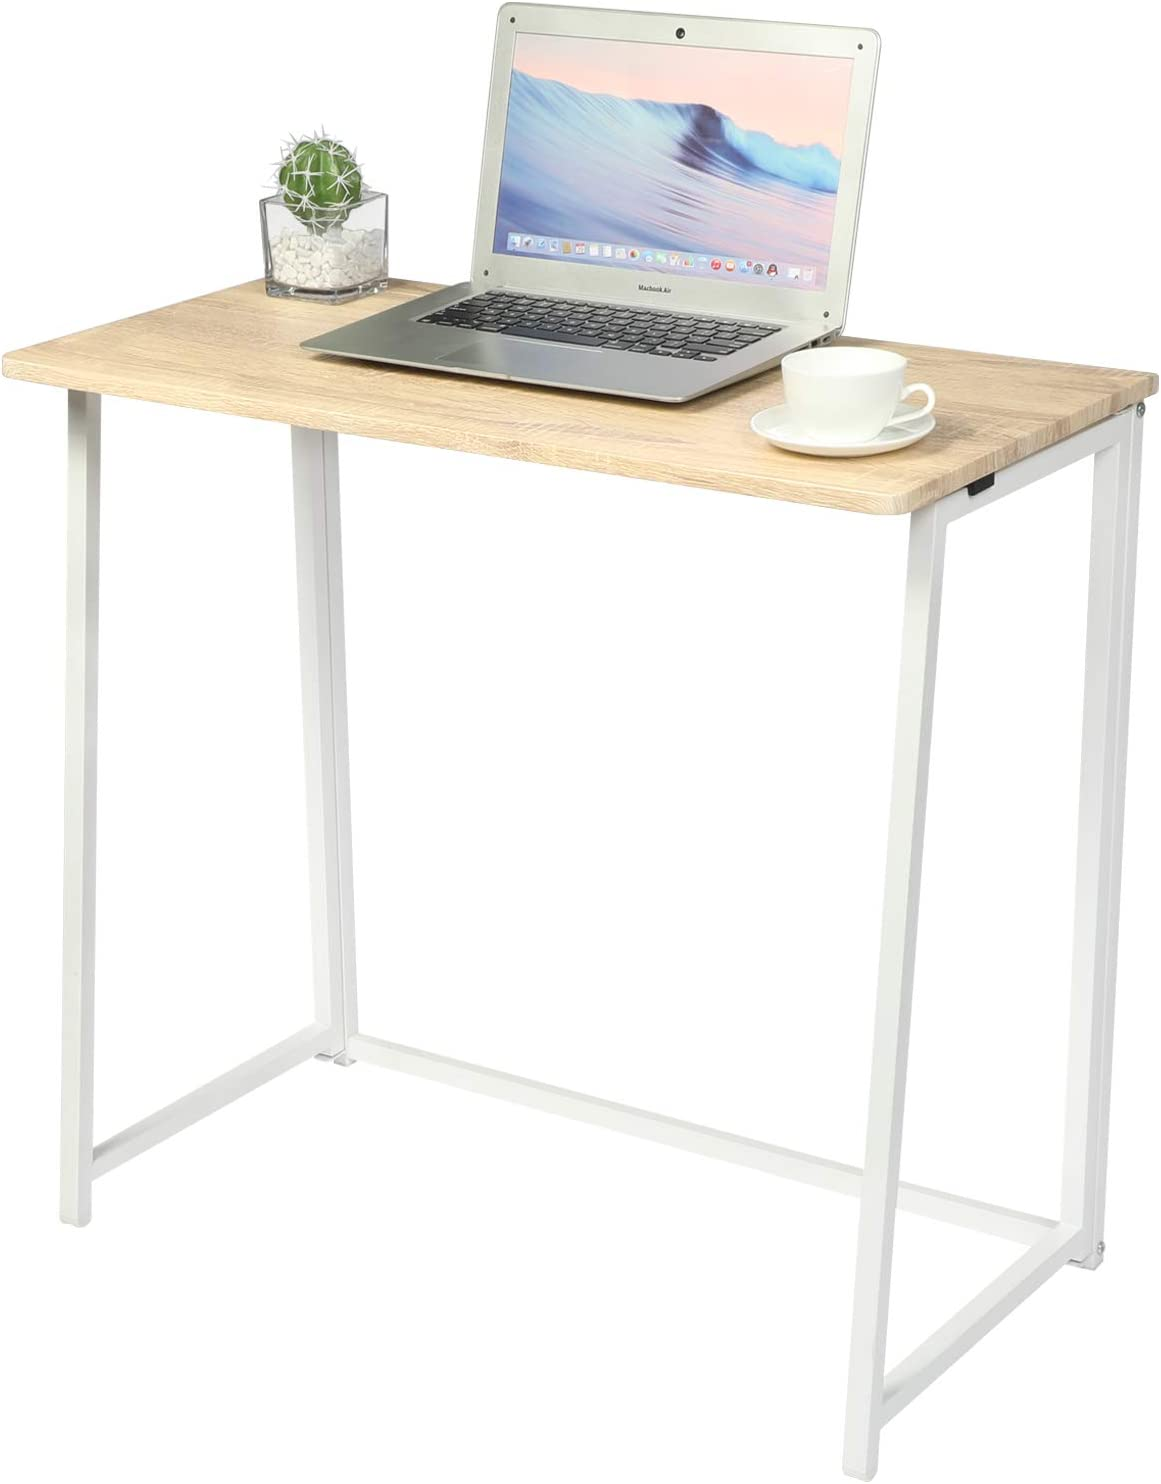 GreenForest Foldable Desk Small Computer Desk Writing Table, Modern Simple Notebook Desk Workstation for Home Office, Saving Space,Oak